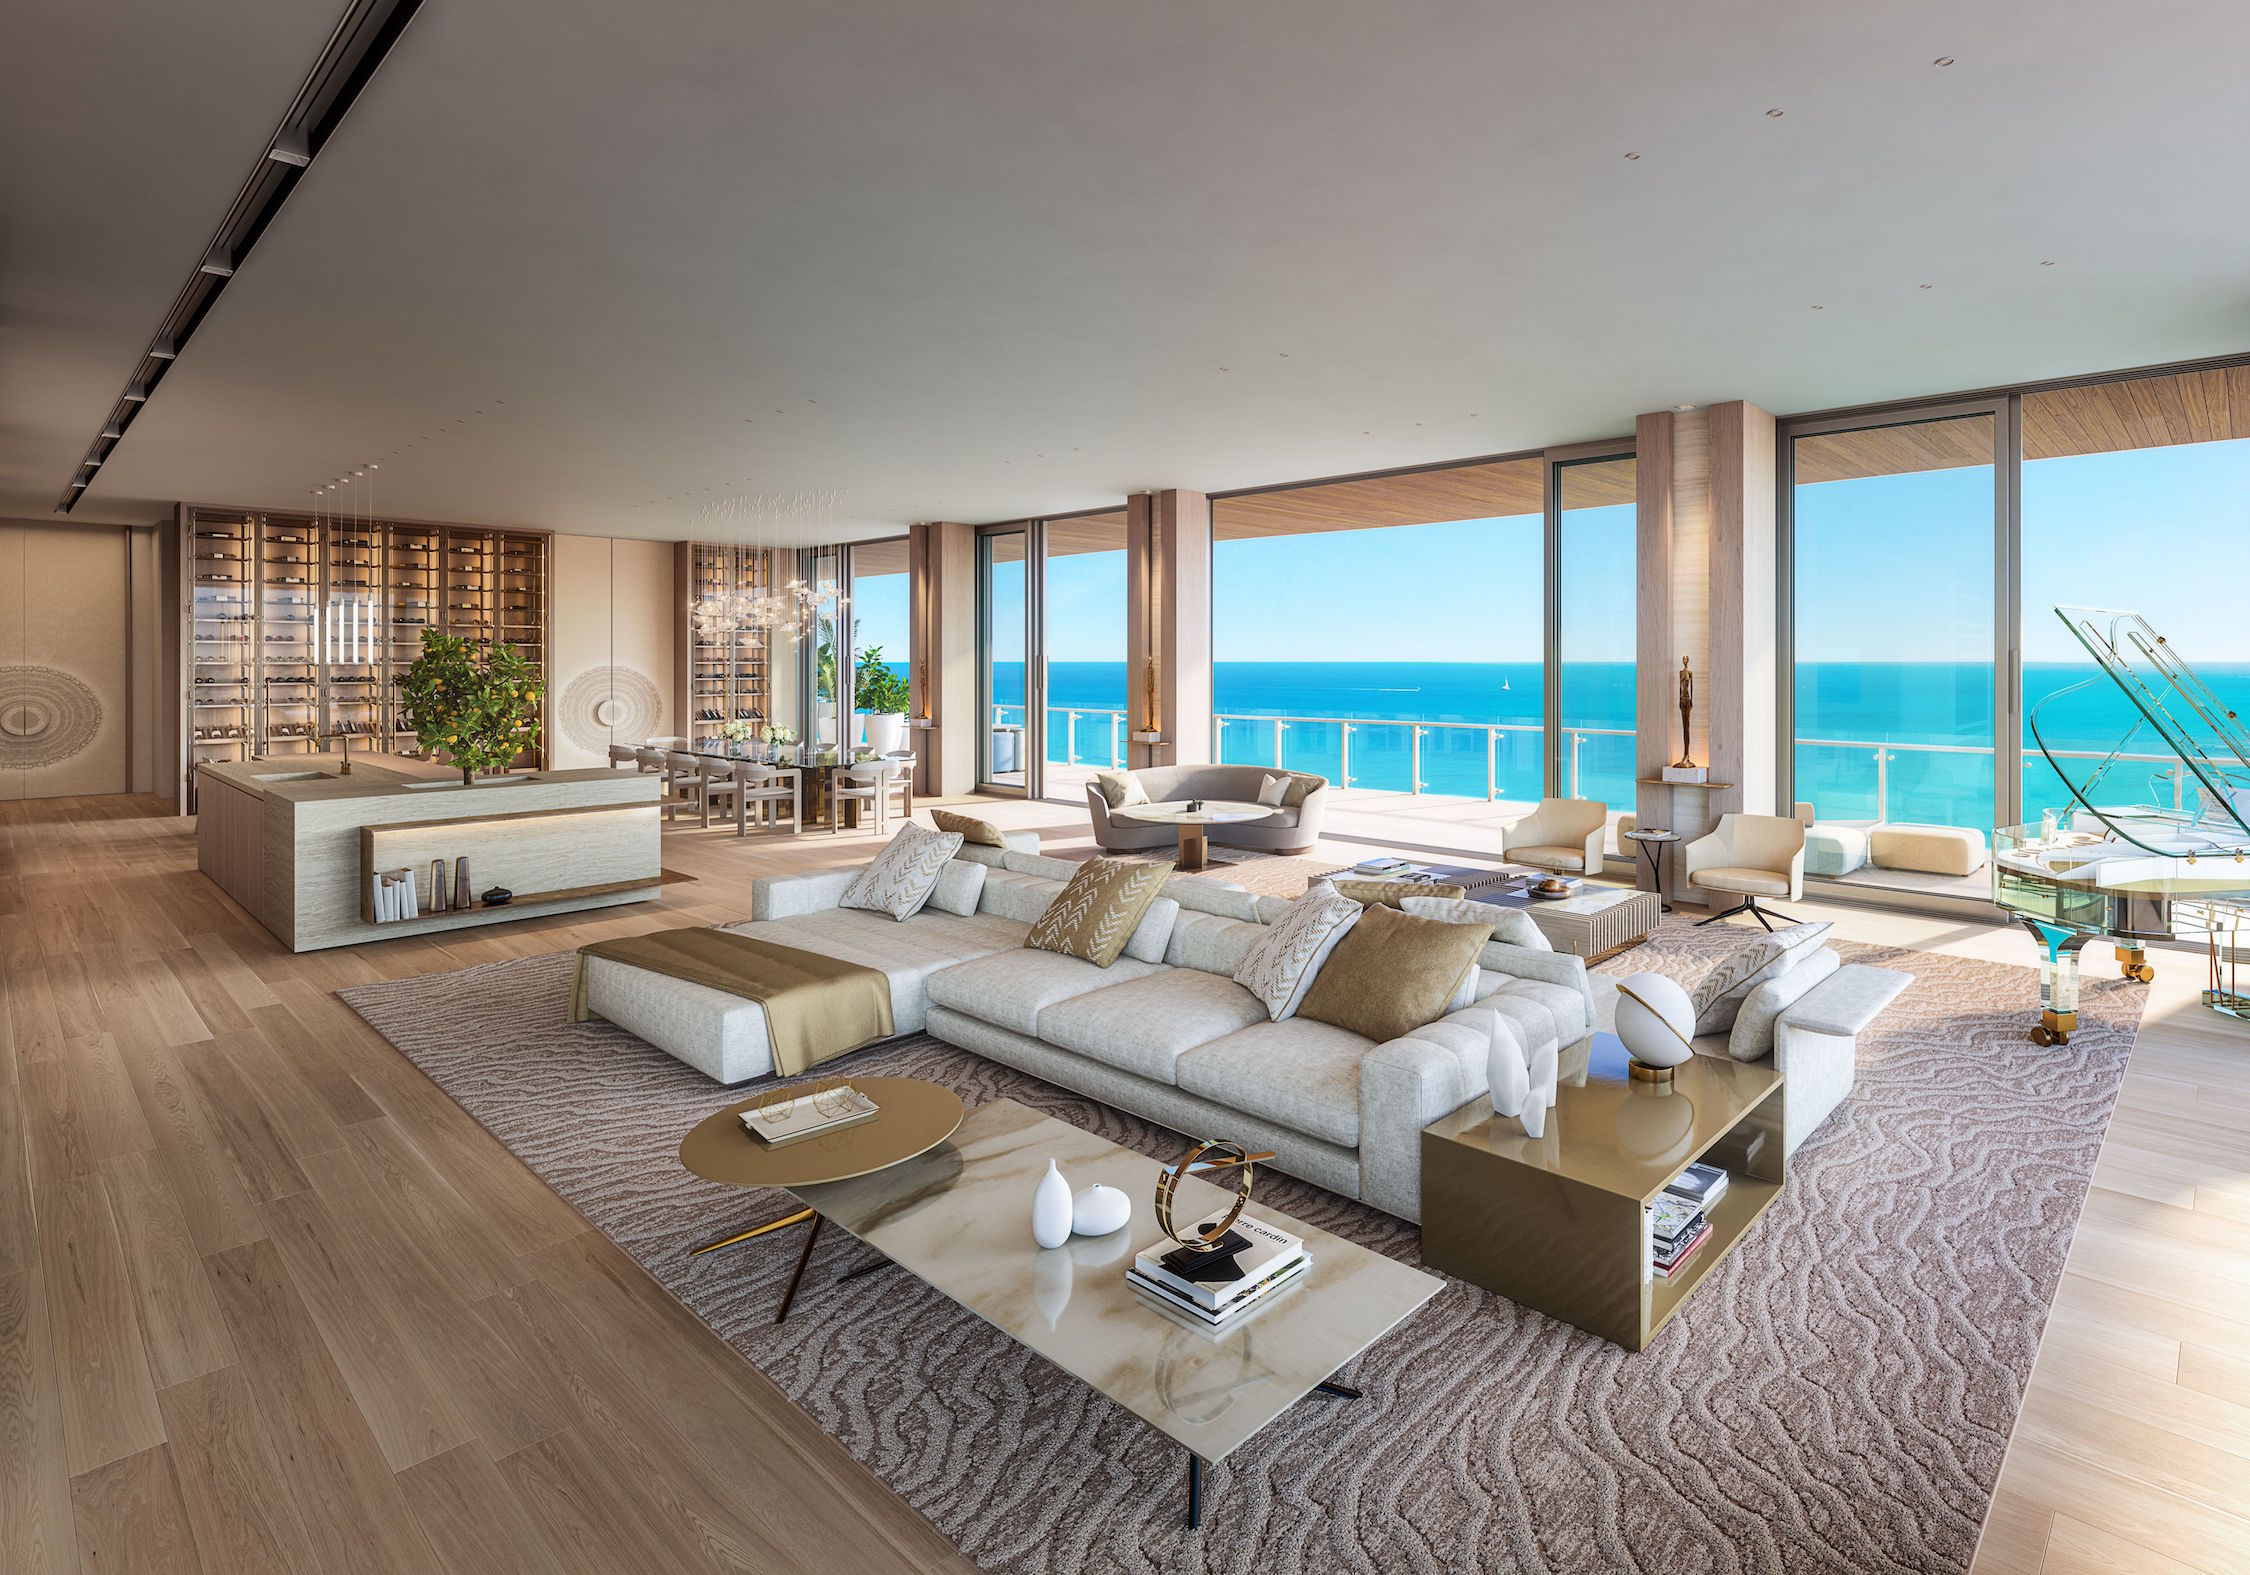 57 Ocean penthouse dining and living room